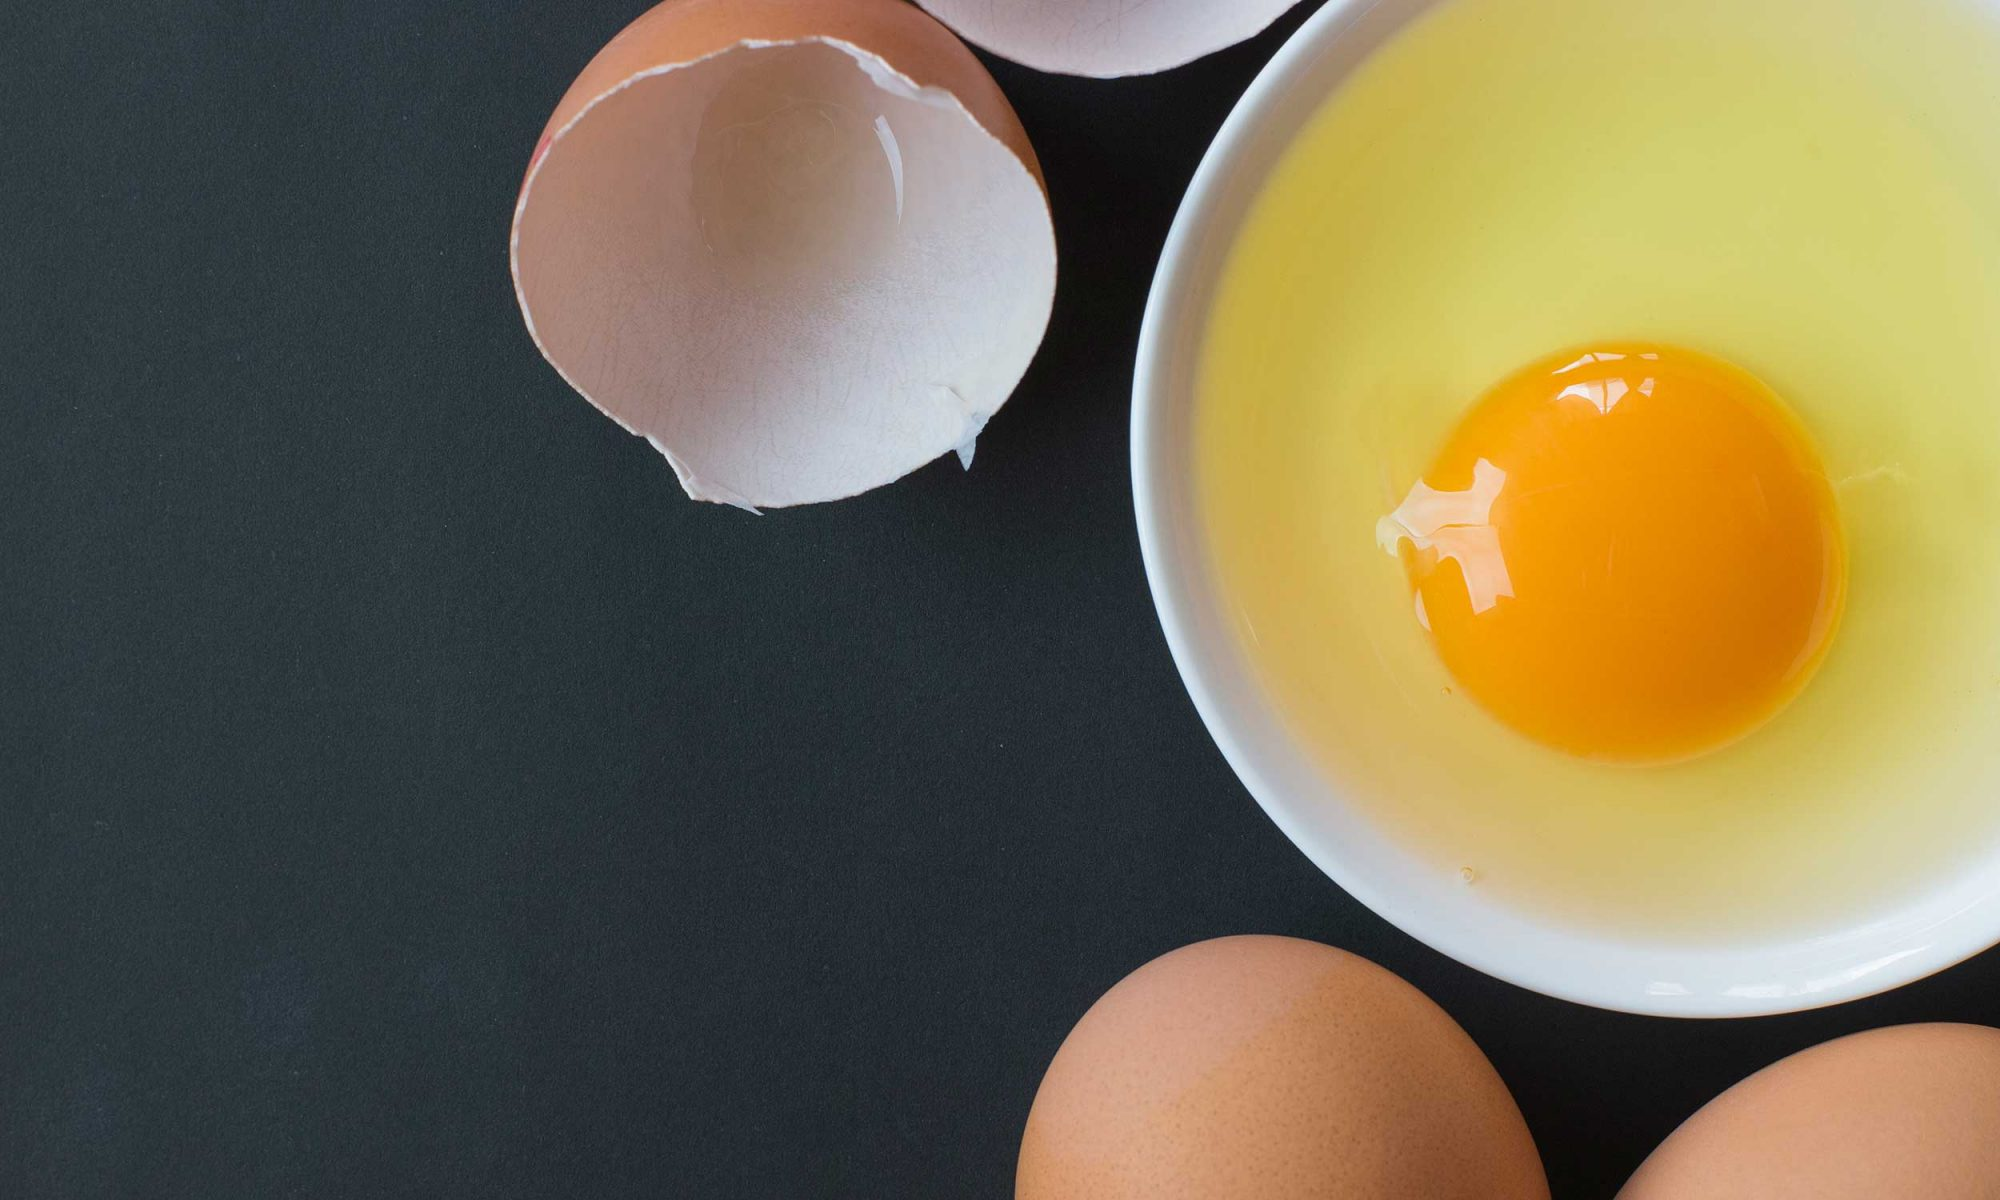 EC: How Much Protein Is in an Egg?